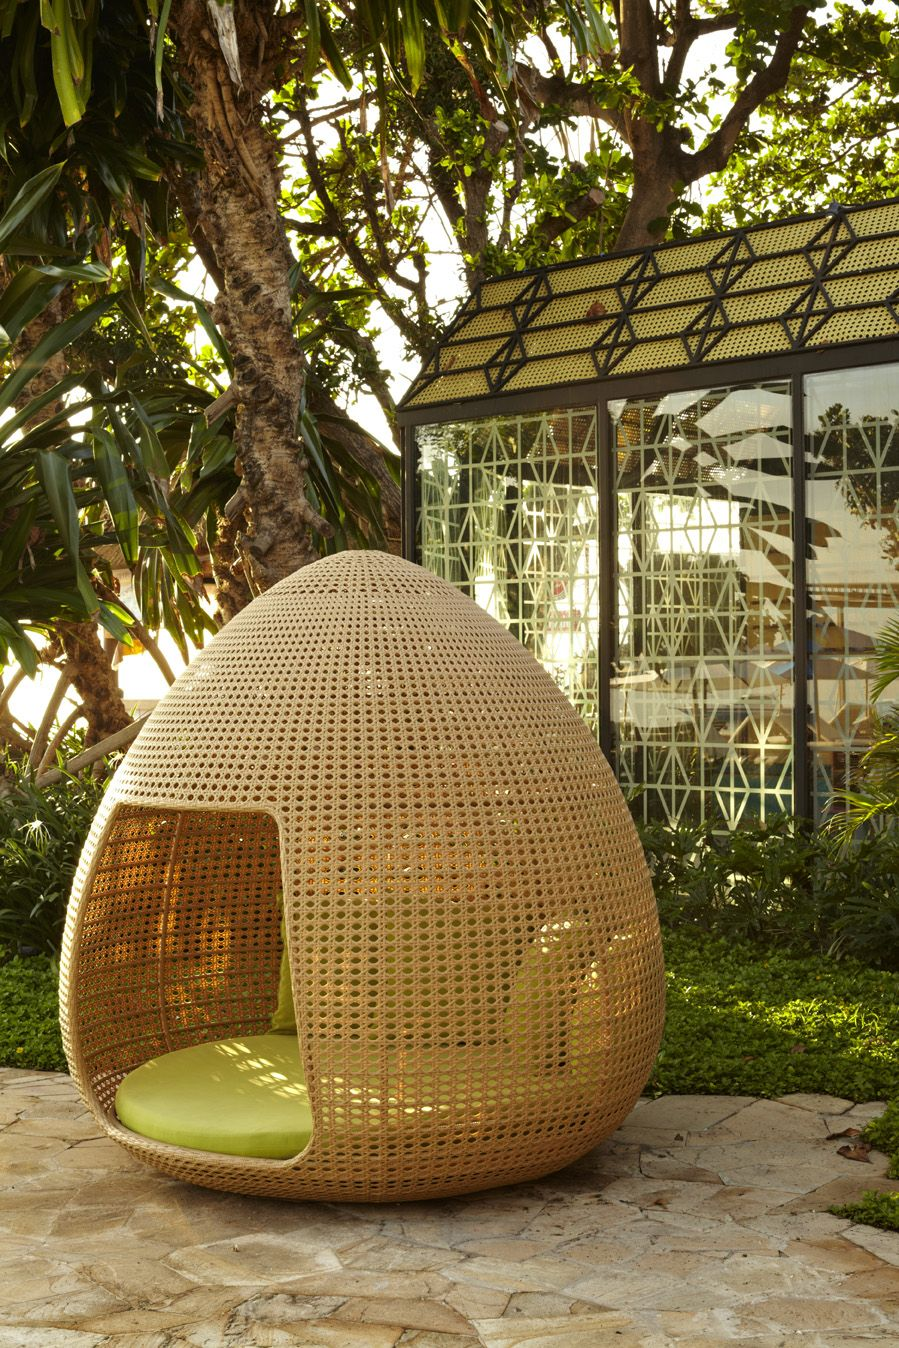 Cocoon like outdoor furniture made out of synthetic rattan for both parents and children to chill